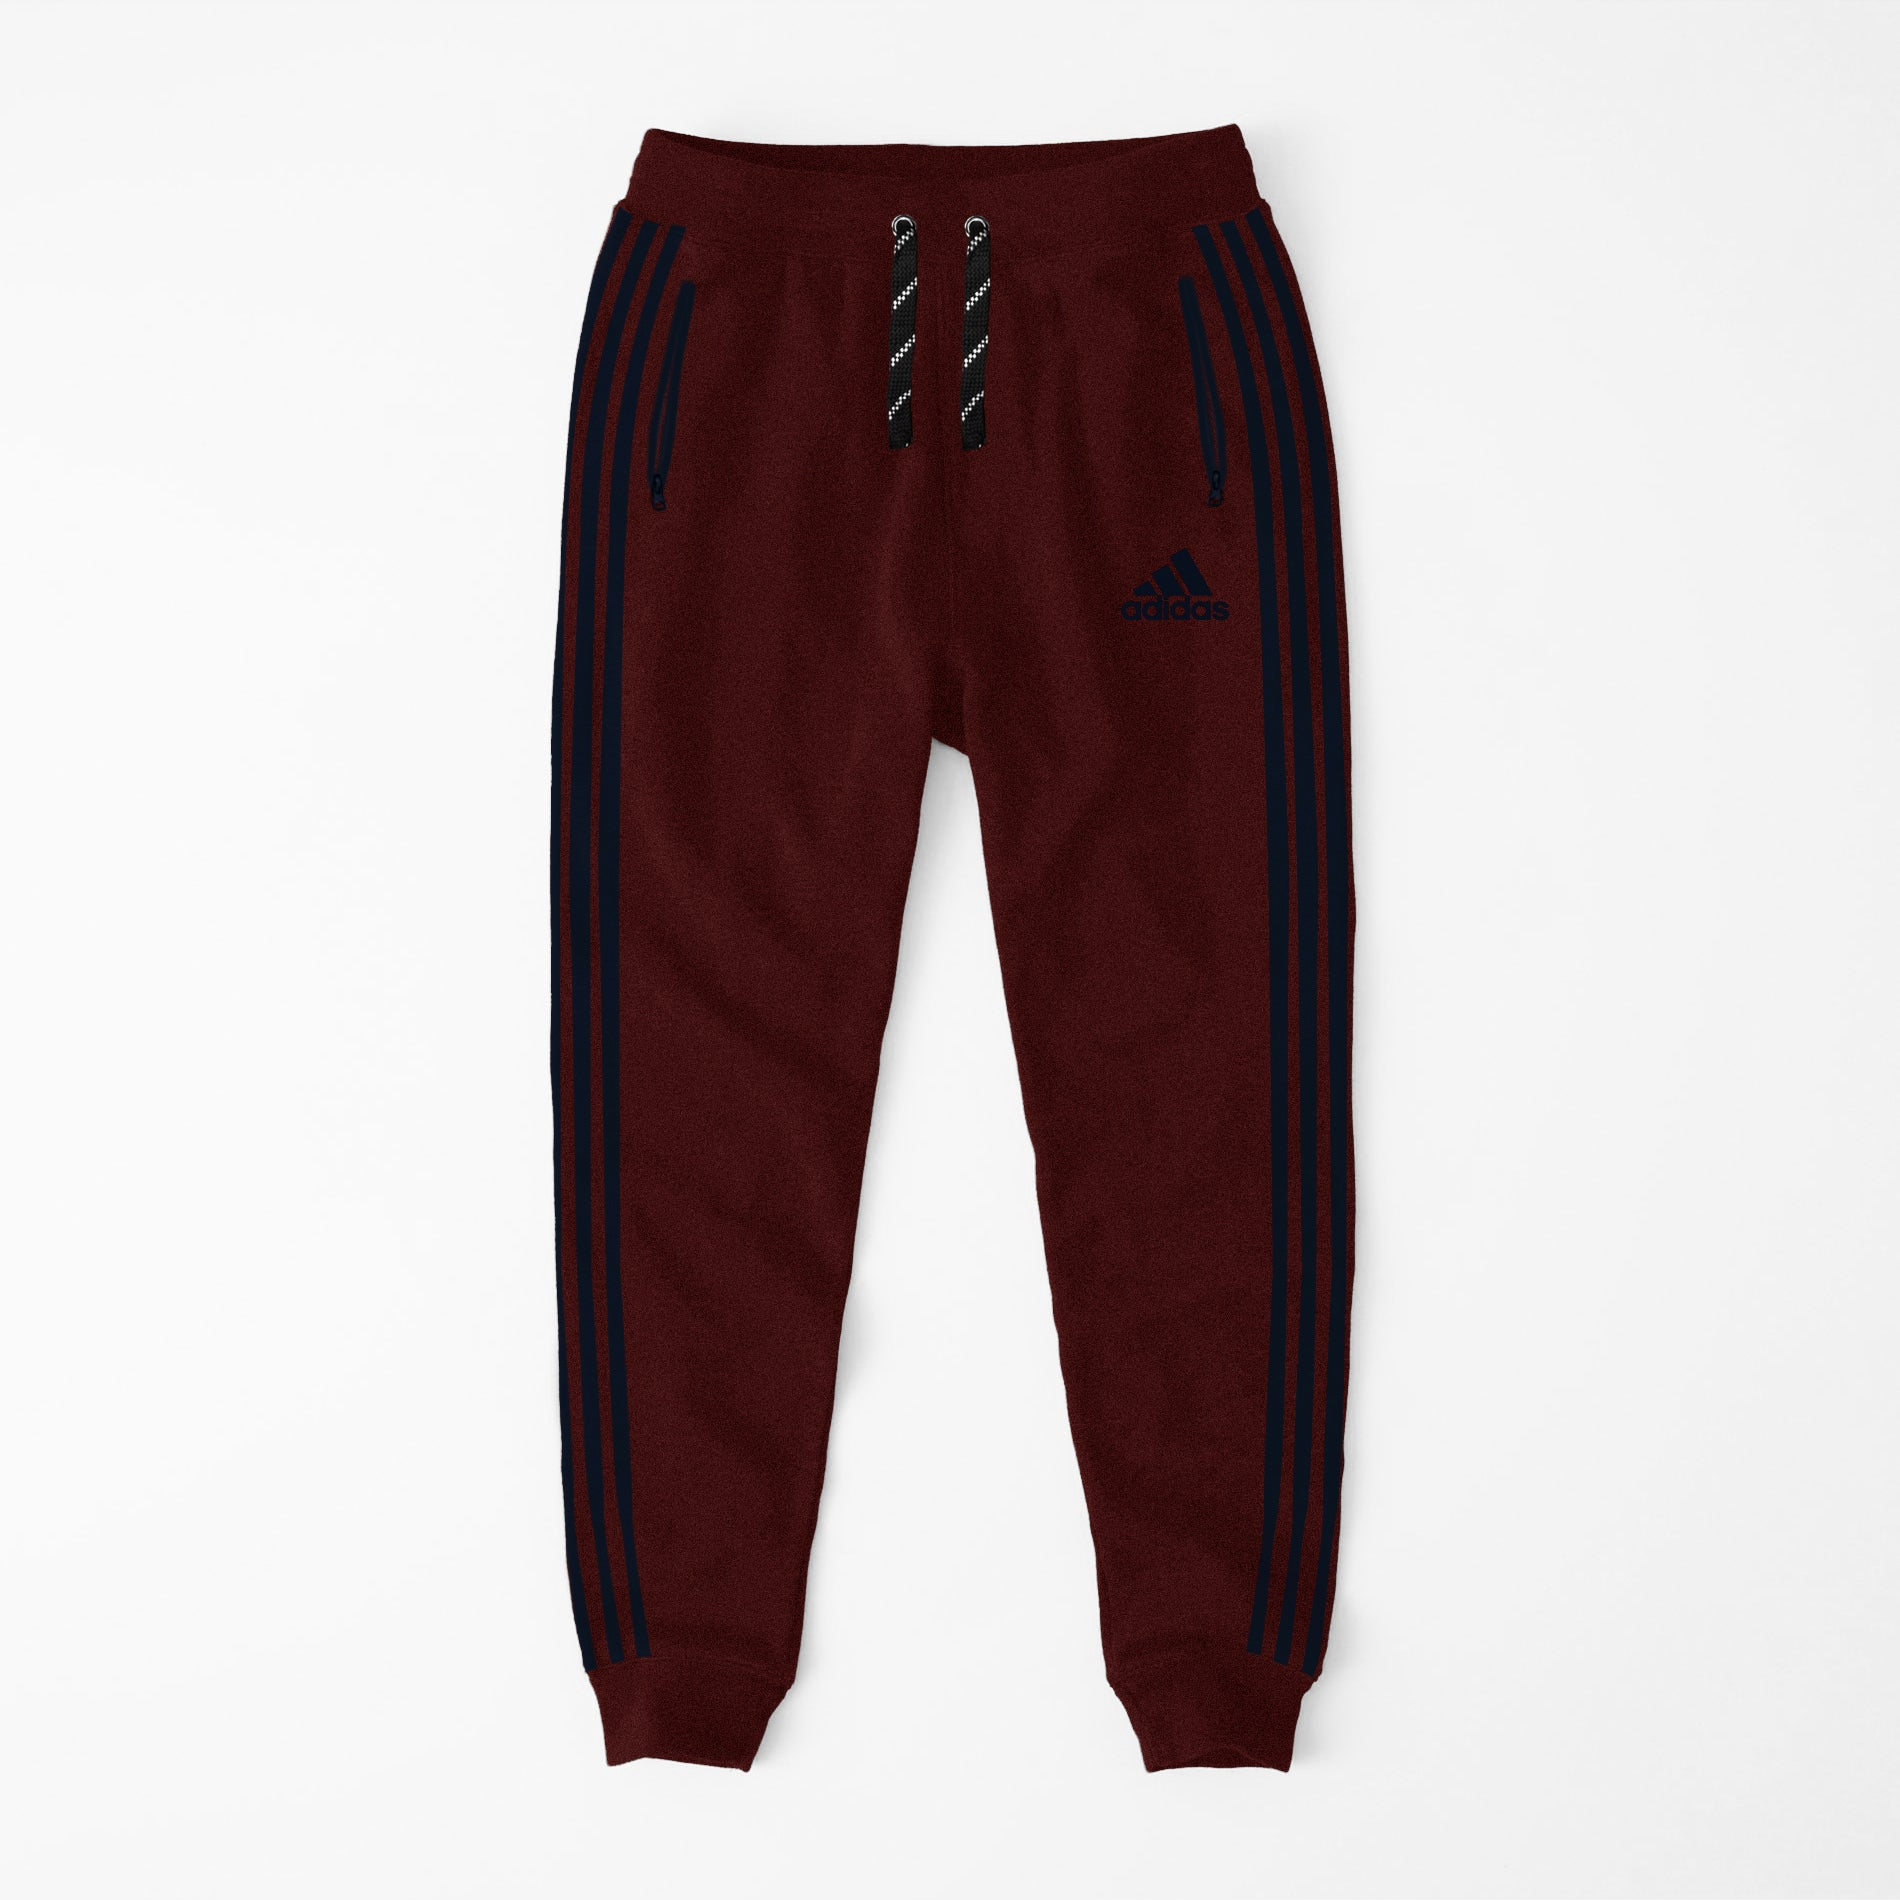 Adidas Single Jersey Slim Fit Jogger Trouser For Men-Red Melange With Dark Navy Stripes-NA8253